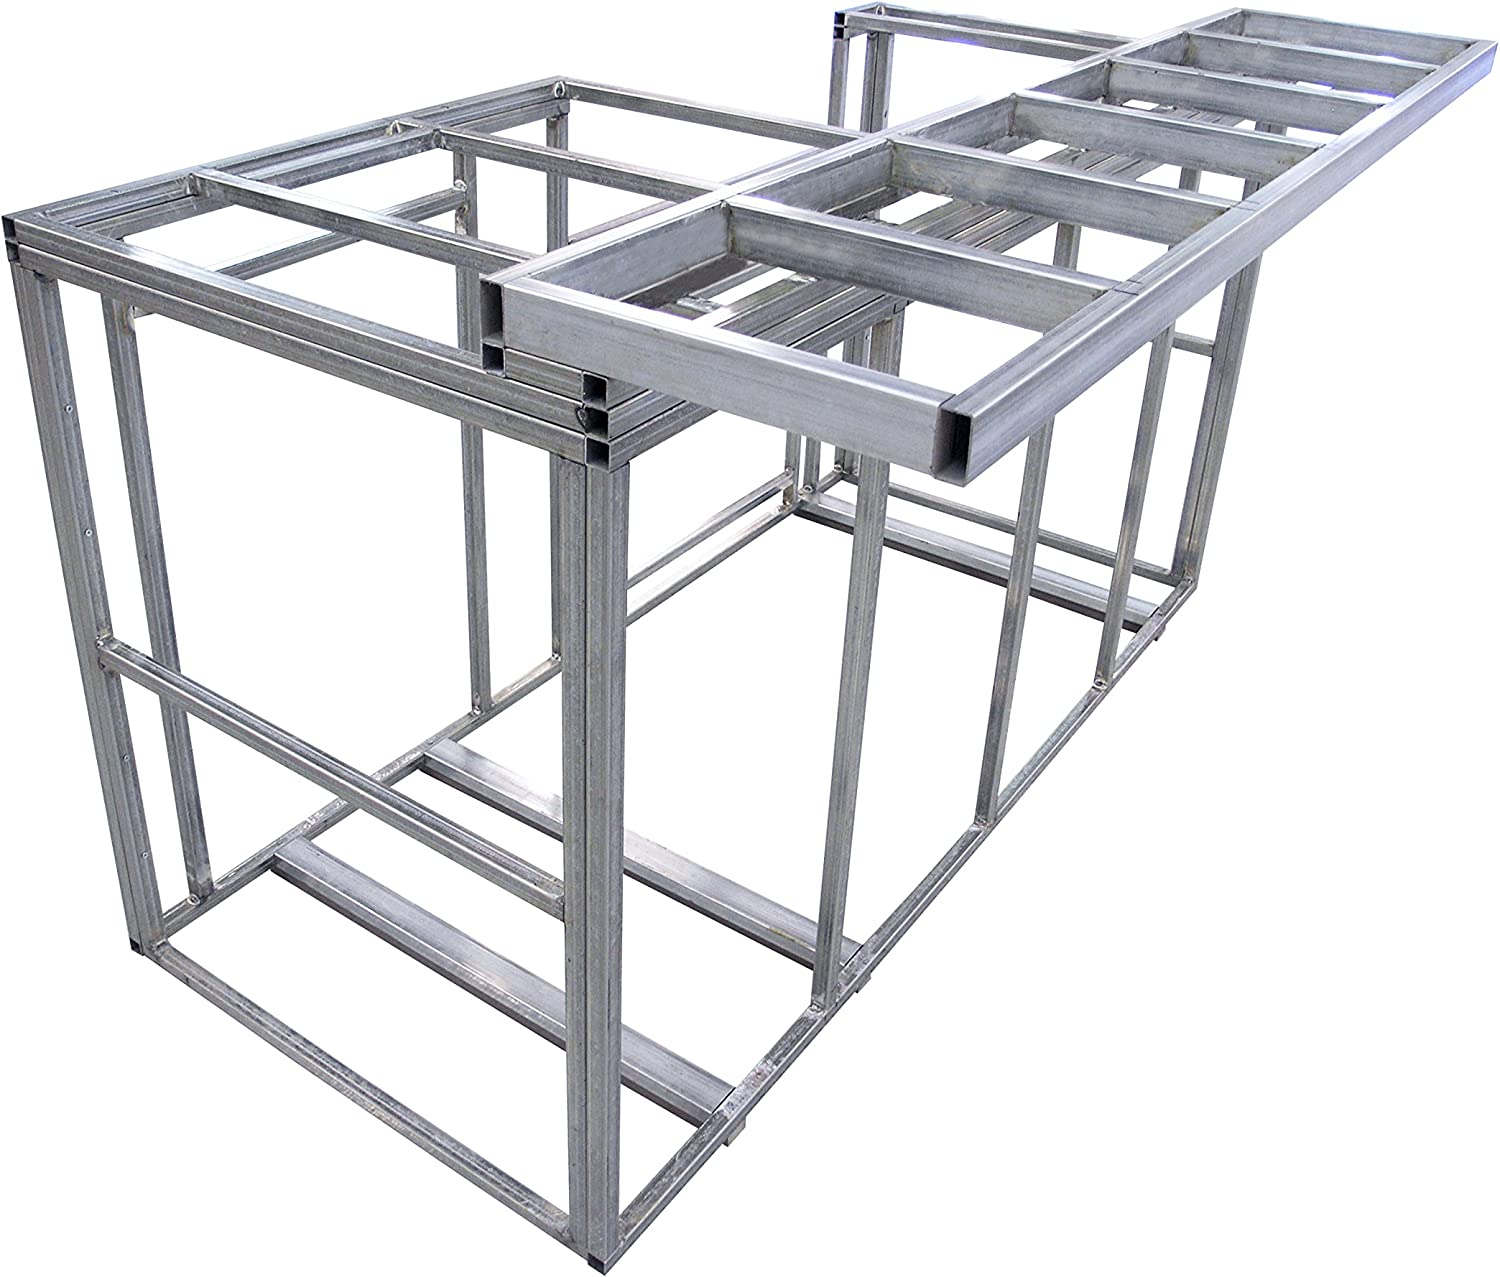 Cal Flame Kd F6016 6 Outdoor Kitchen Island Frame Kit With Bar Top Diy 77 Wide X 20 Deep X 47 Tall 184 Lbs Amazon In Garden Outdoors